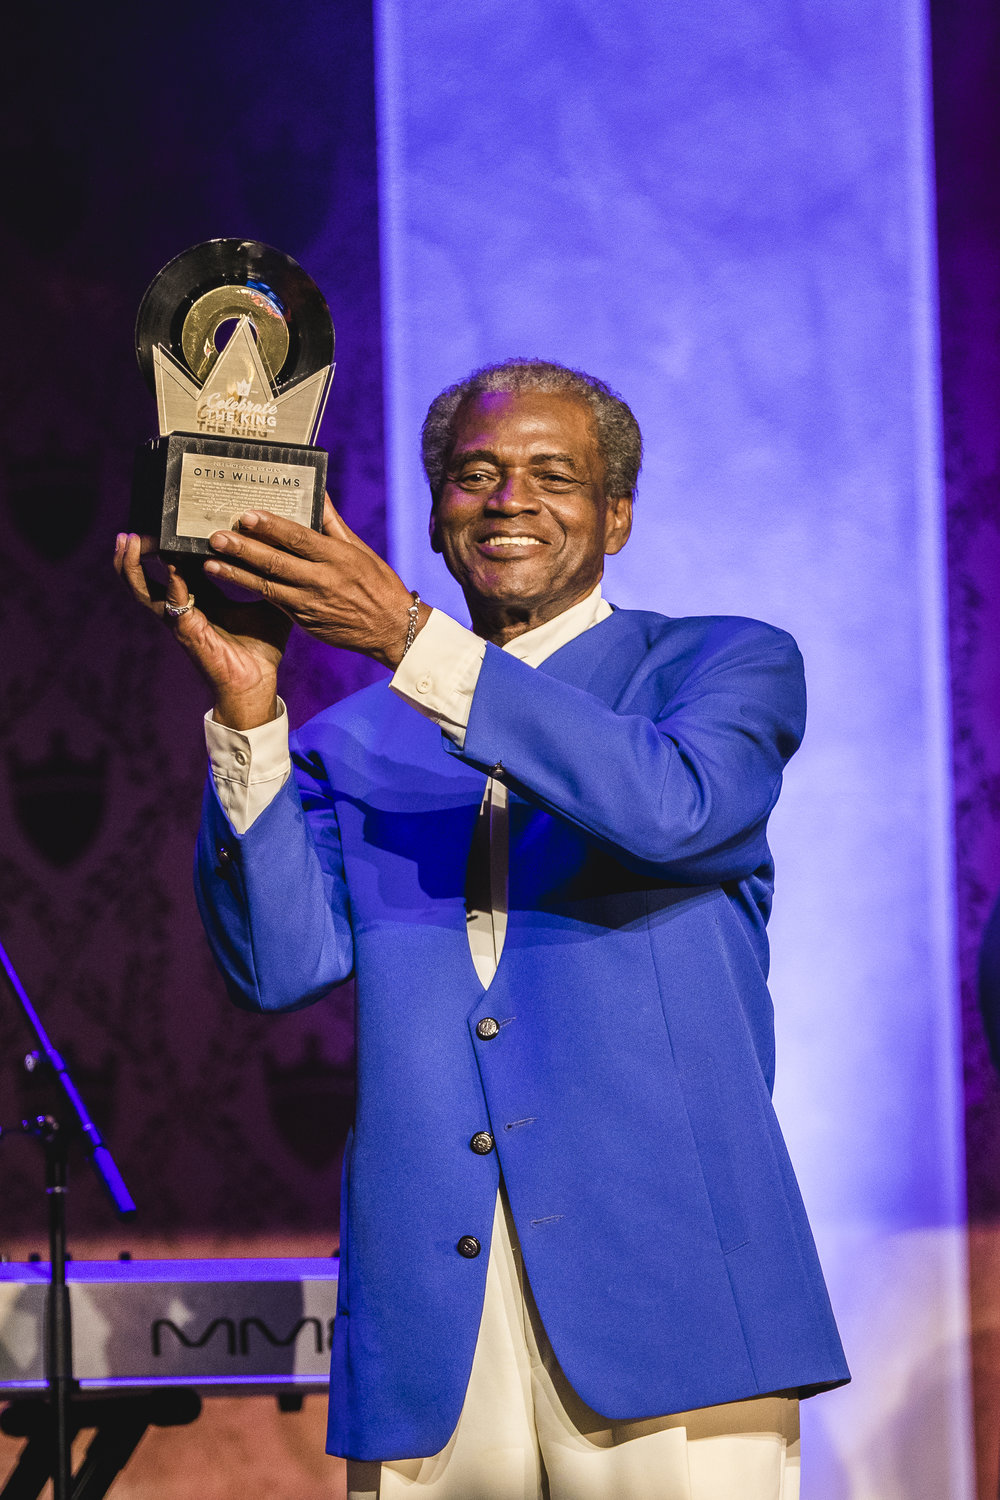 The original man of Doo Wop, Mr.Otis Williams, accepting his Lifetime Achievement at Celebrate the King.